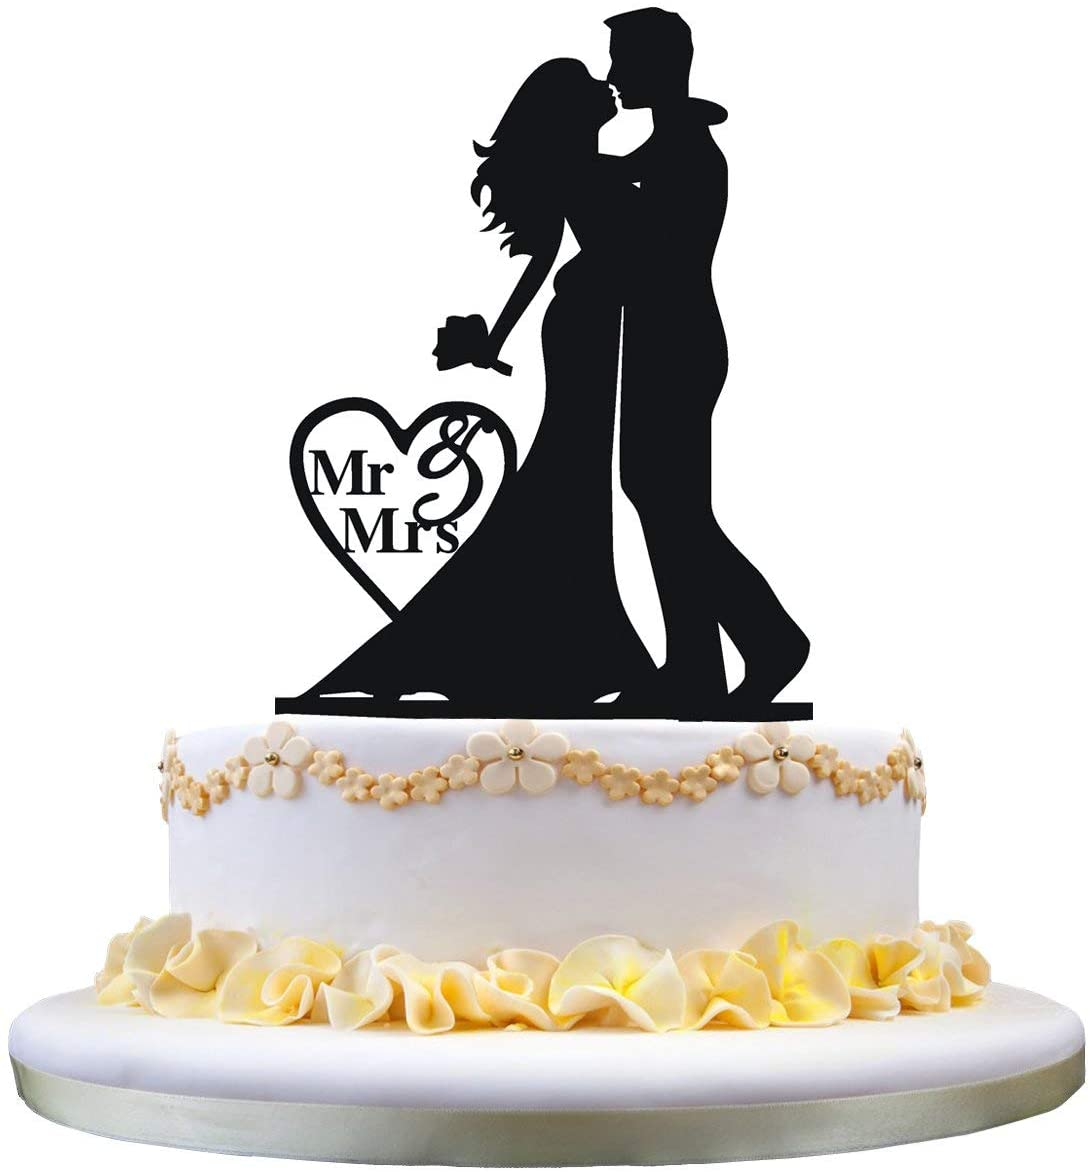 Laser Cut Bride And Groom Cake Topper For Wedding Free CDR Vectors Art